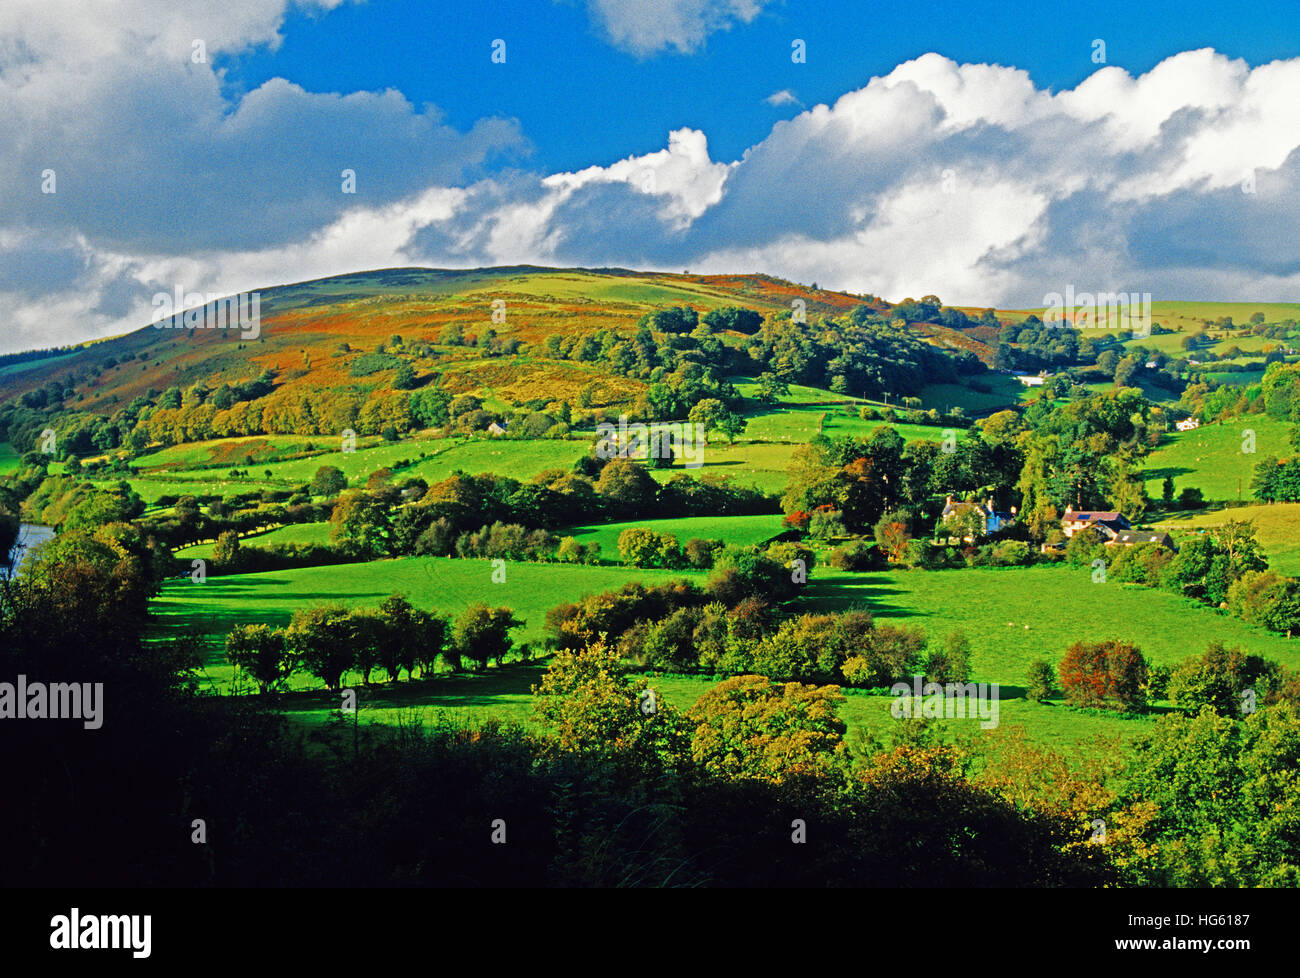 Pastoral landscape in Dee River Valley countryside in Wales. - Stock Image